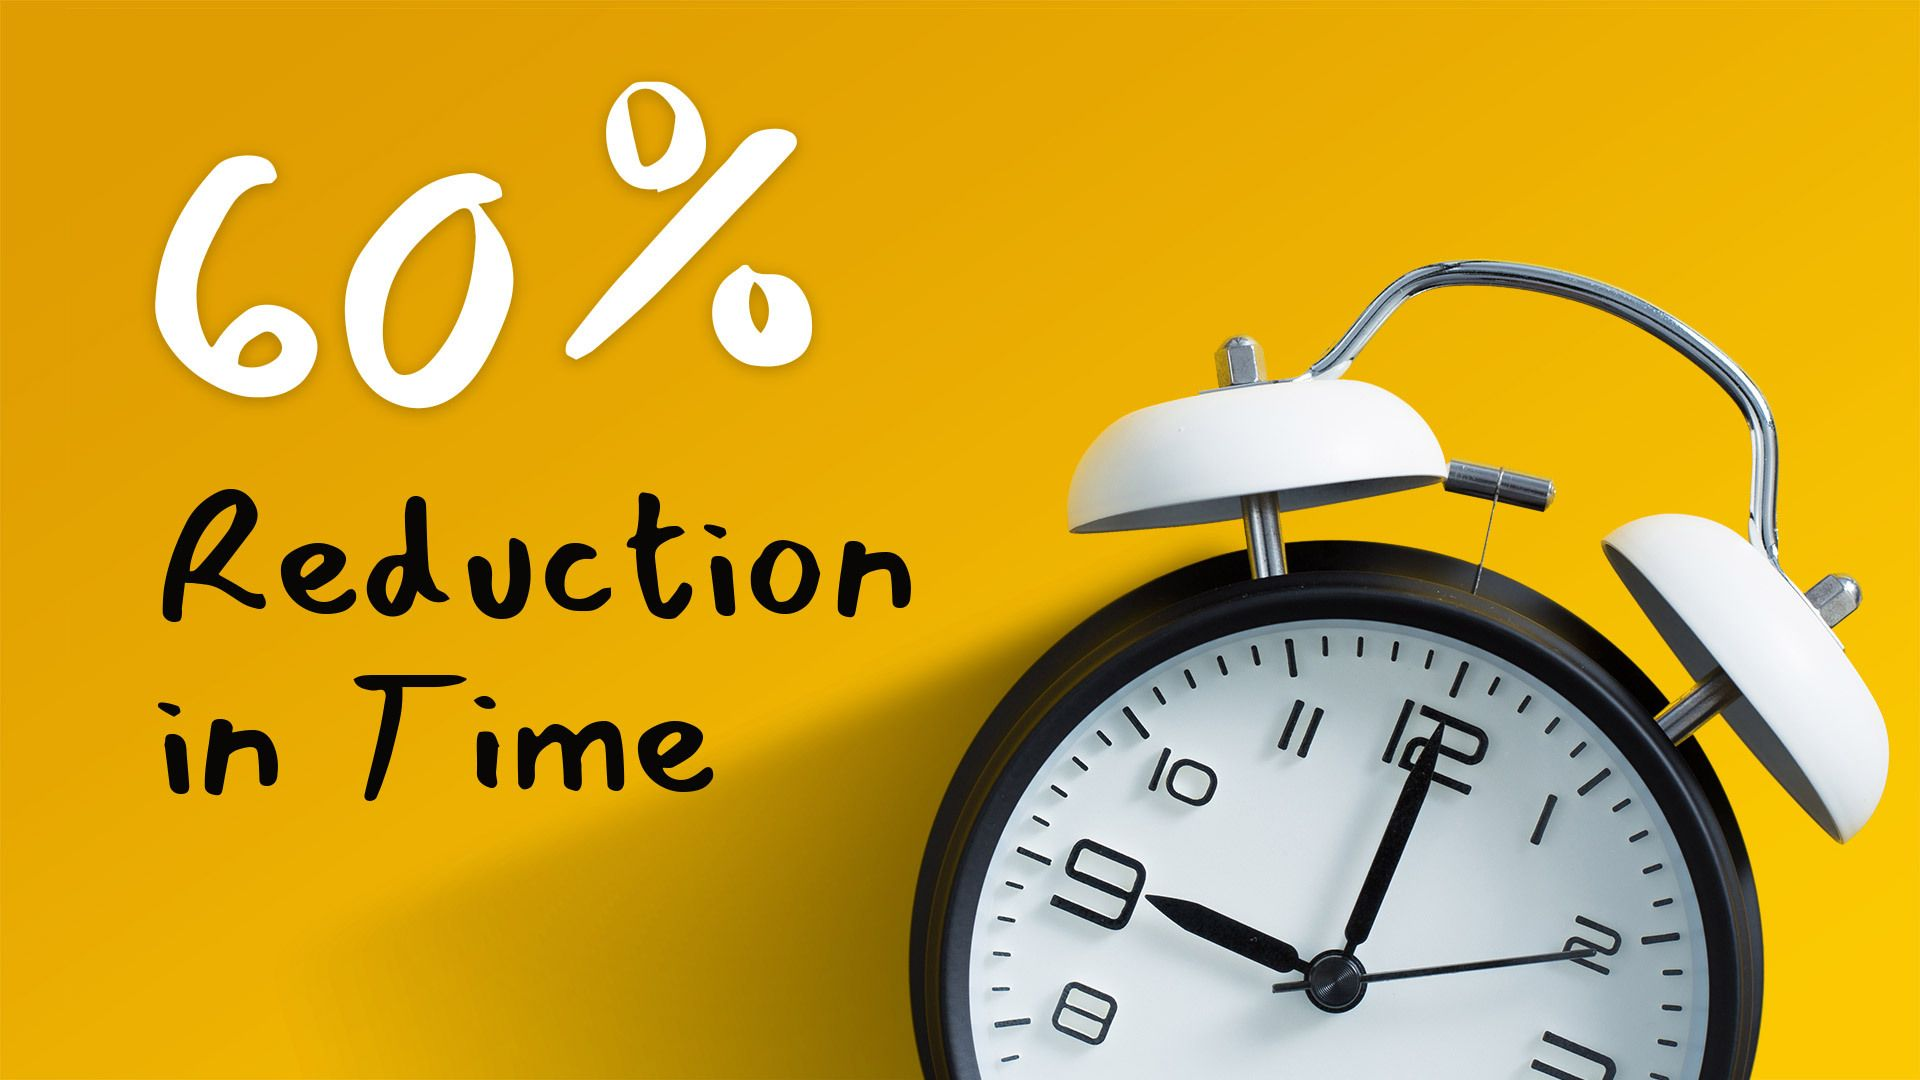 60% Reduction in Time